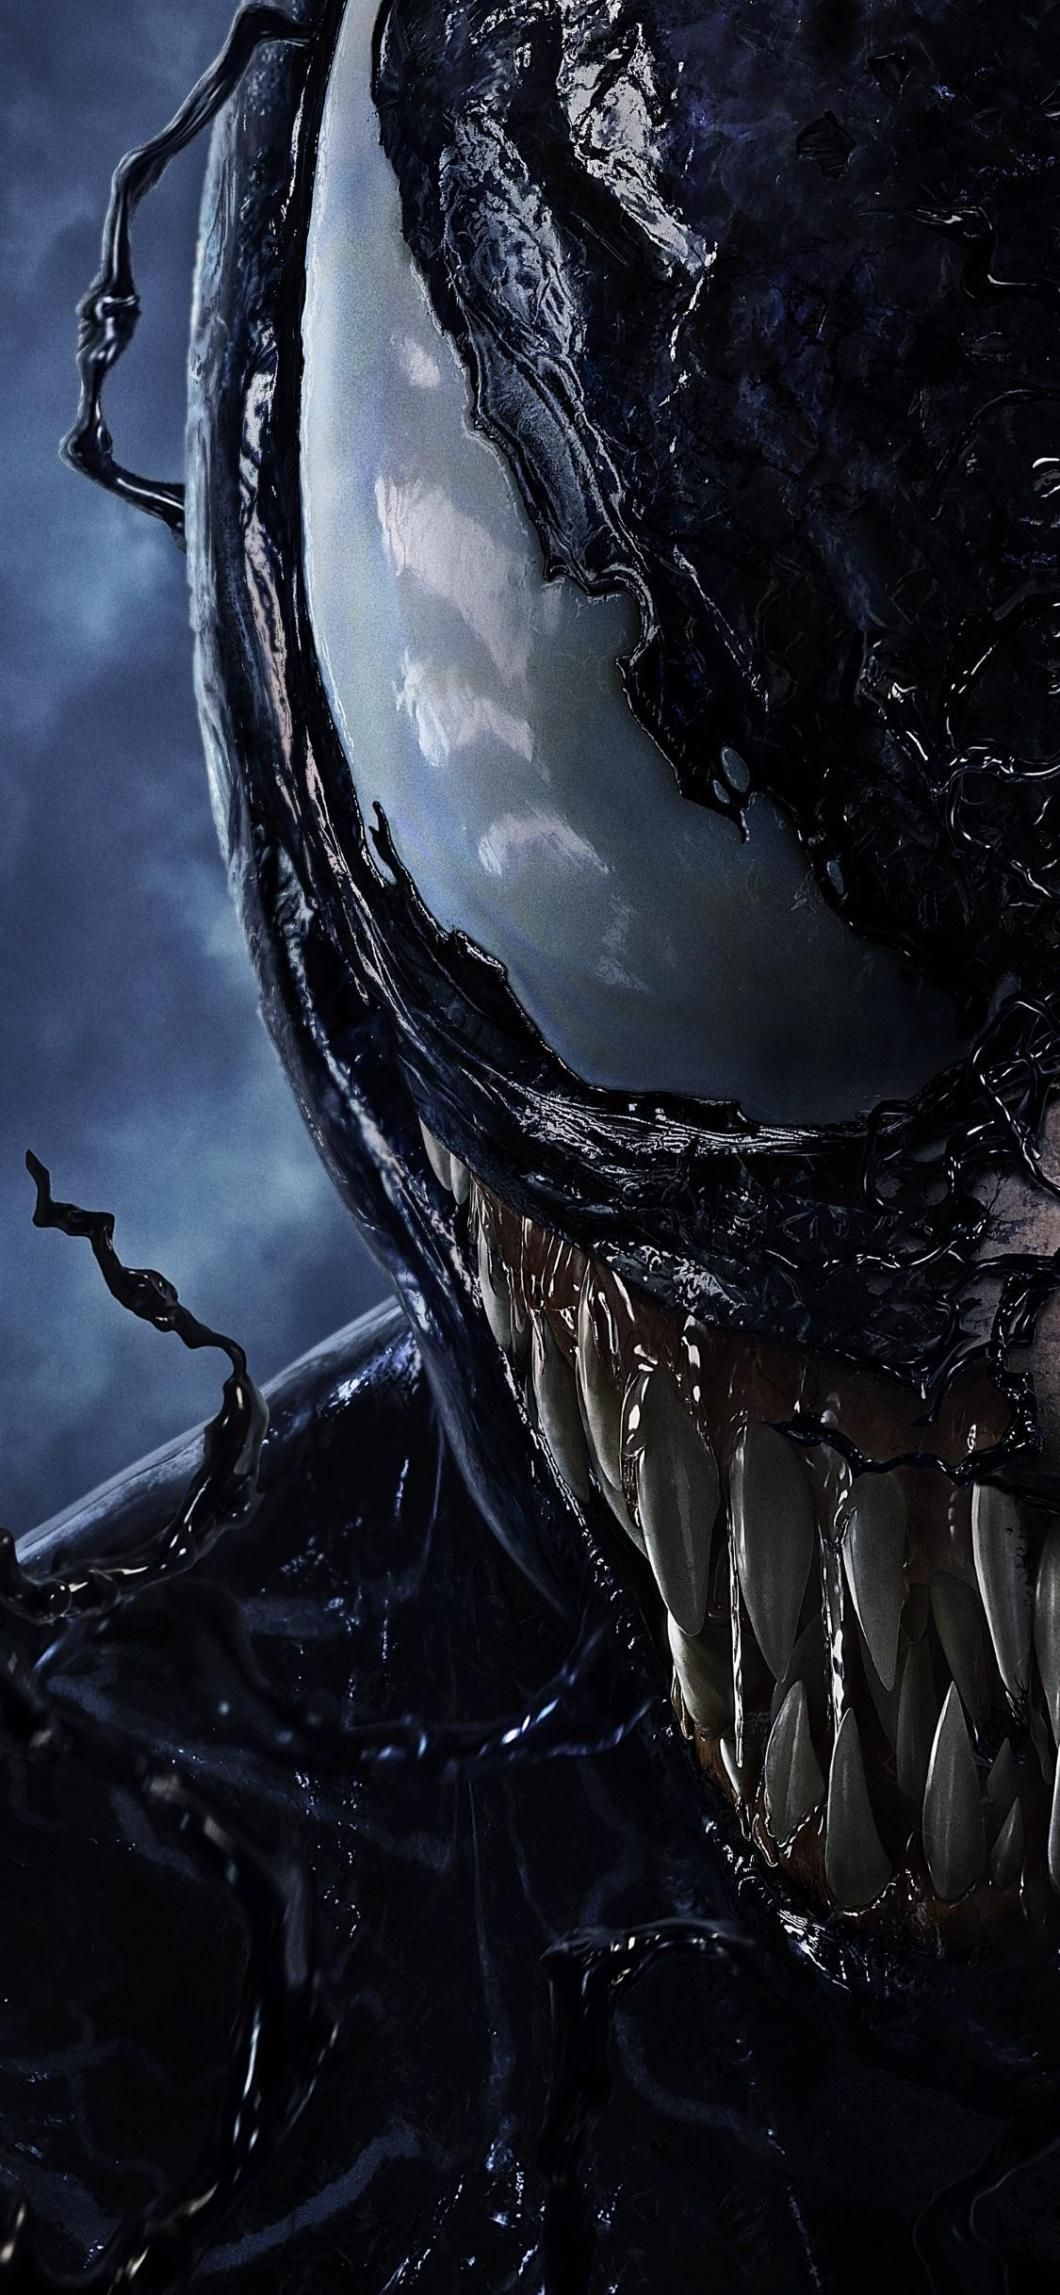 Wallpapers For Iphone X Hd Venom Wallpaper For Iphone X Walljdiorg Wallpapers Wallpapersforiph Marvel Wallpaper Marvel Iphone Wallpaper Marvel Wallpaper Hd